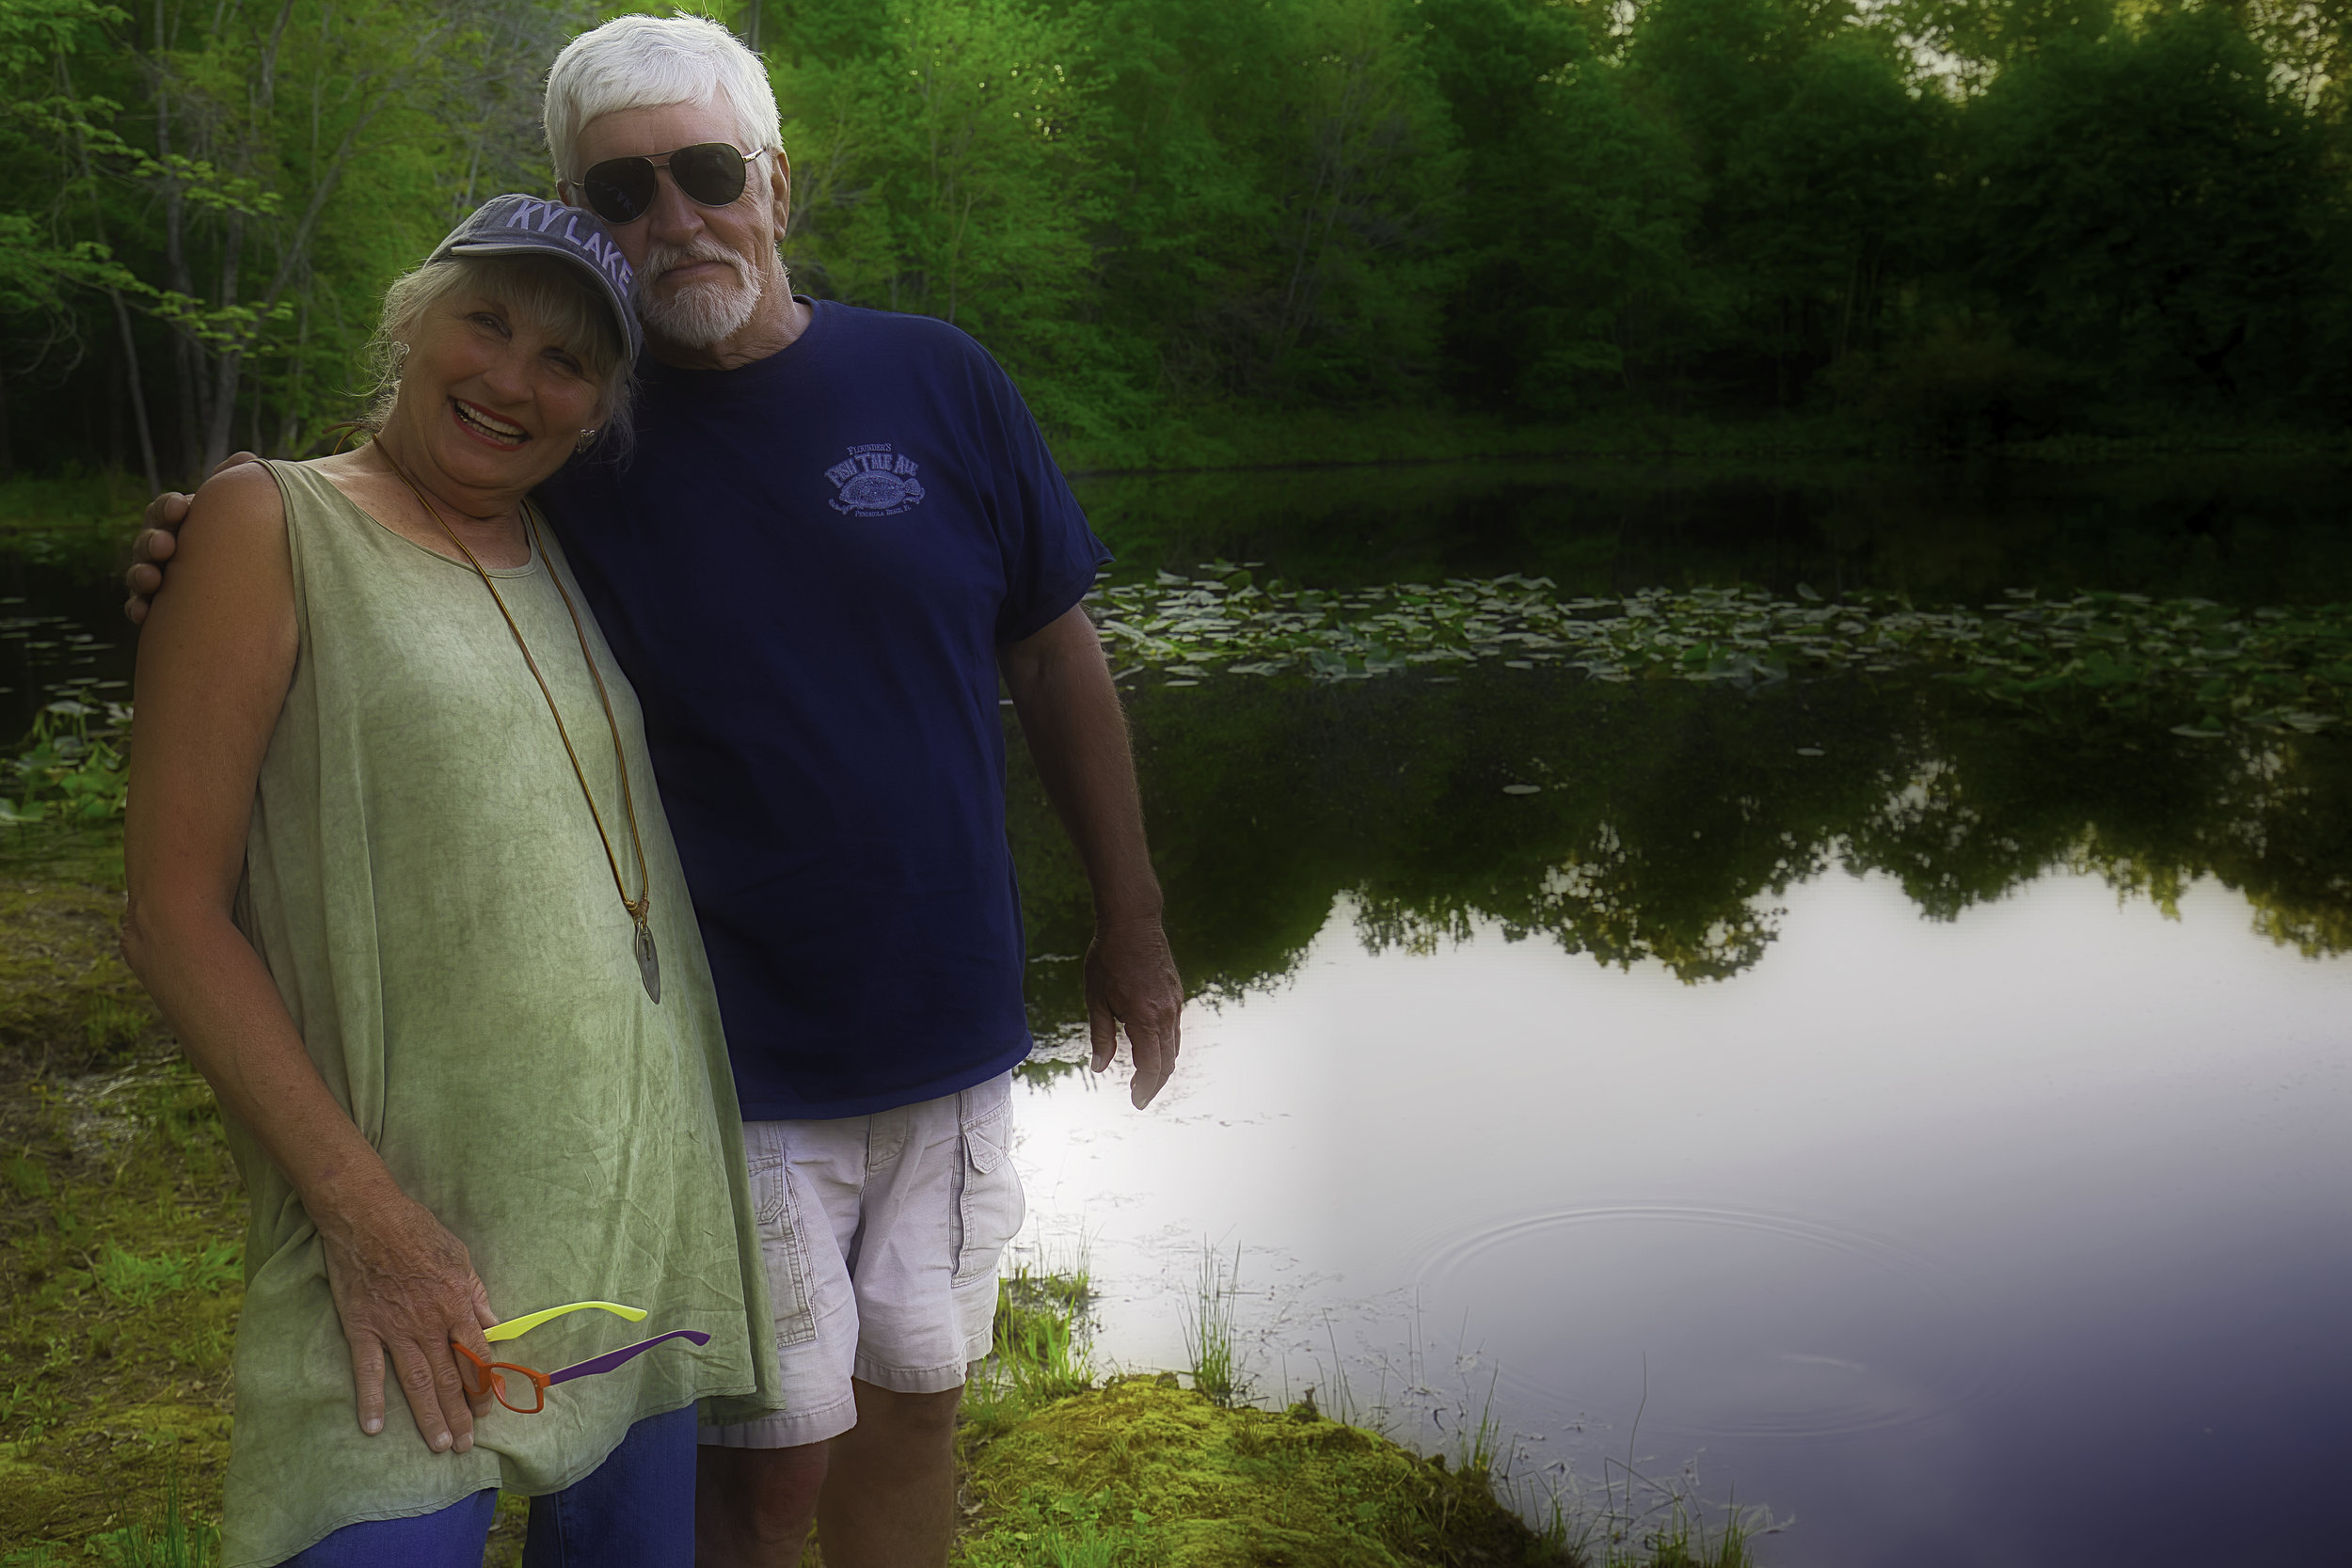 On Seaton Pond - The why brings about the story of